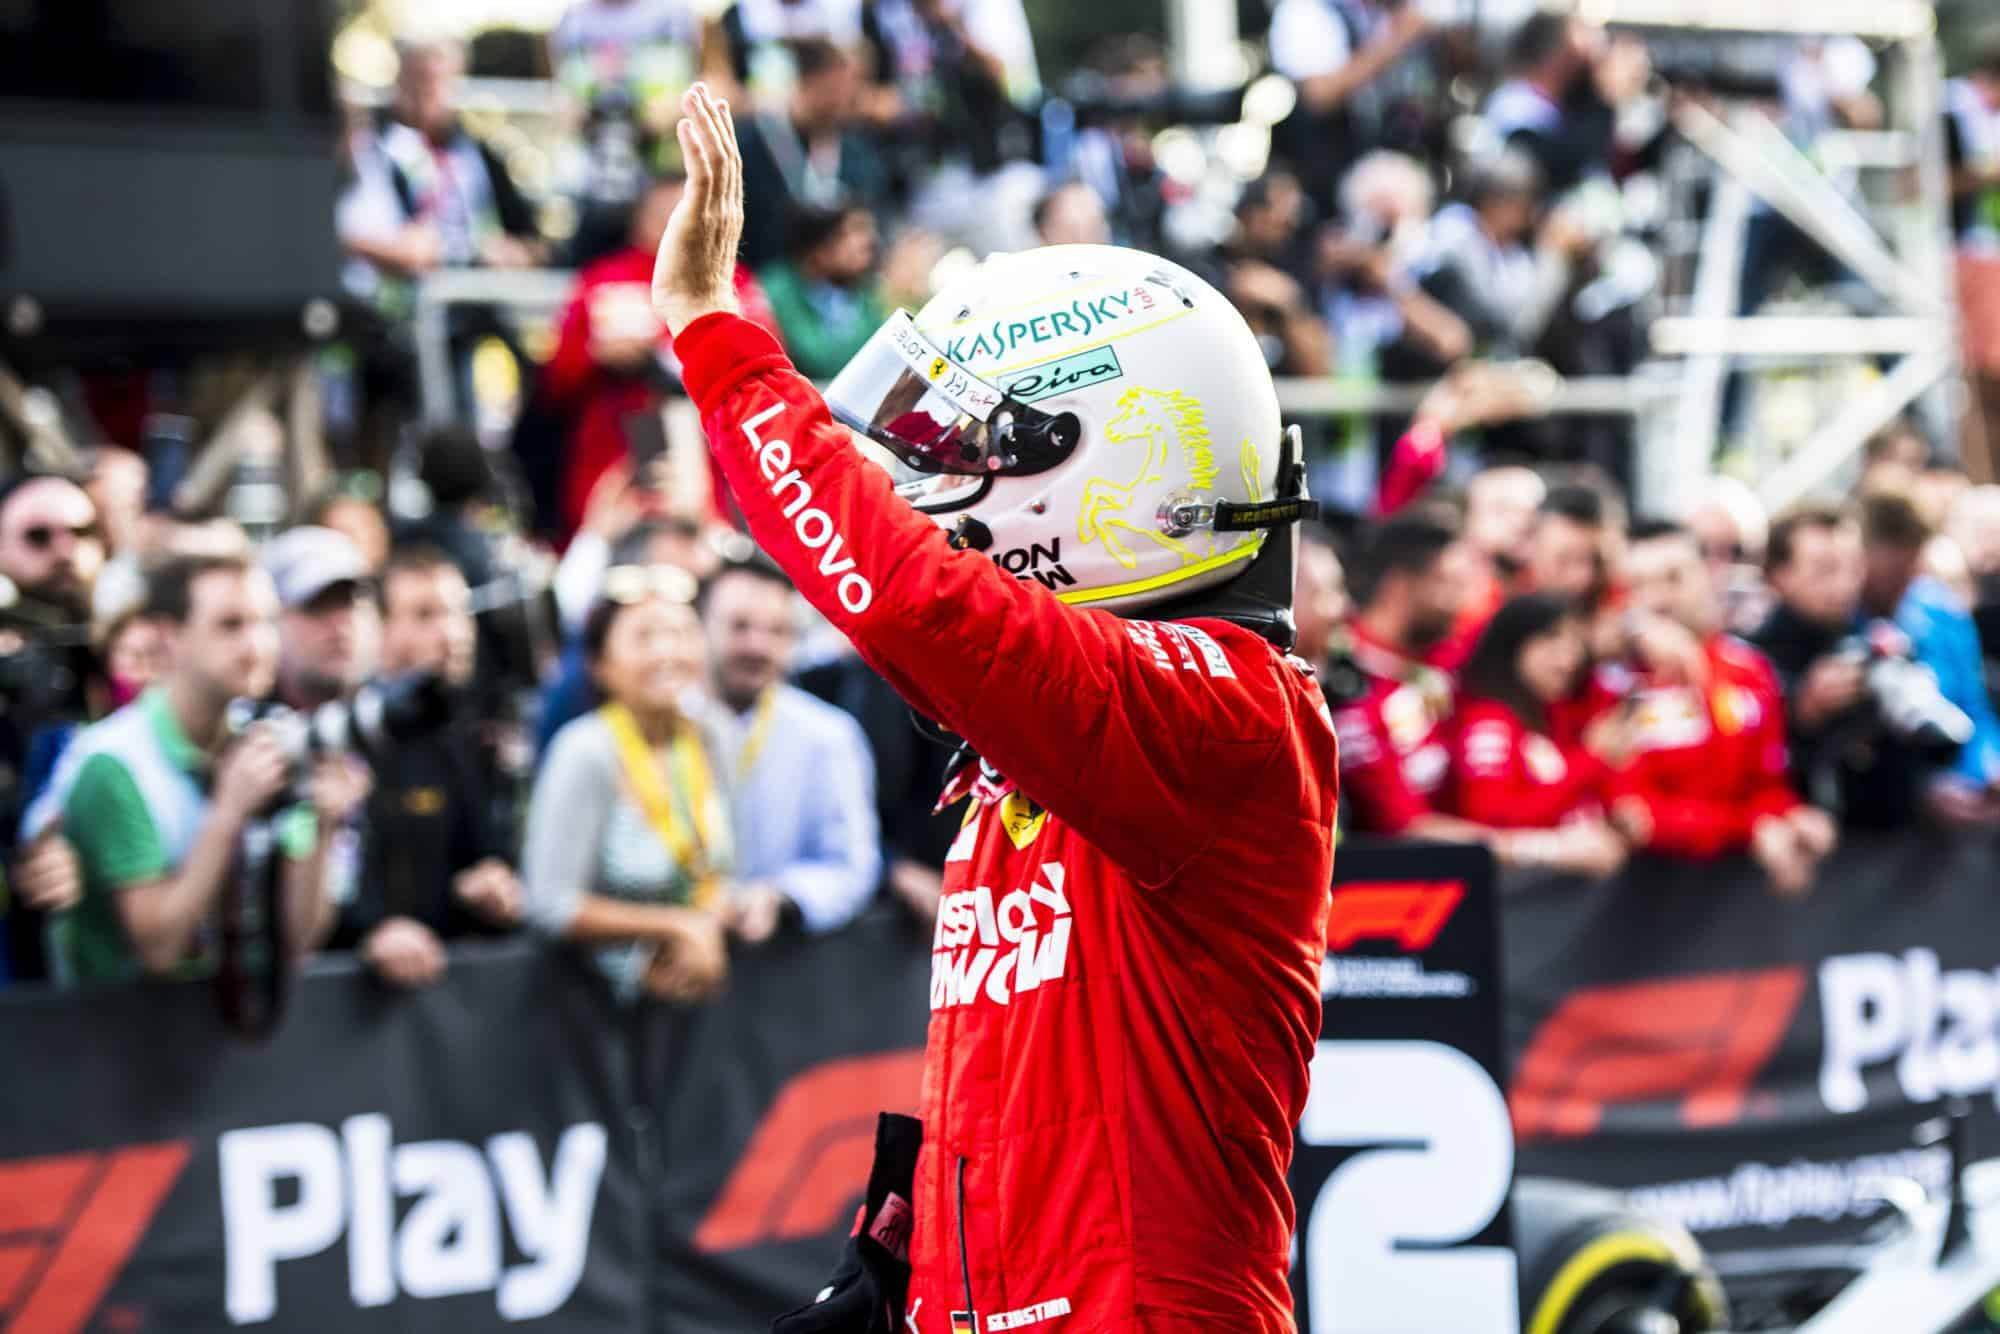 Sebastian Vettel Ferrari Azerbaijan GP F1 2019 post race Photo Ferrari